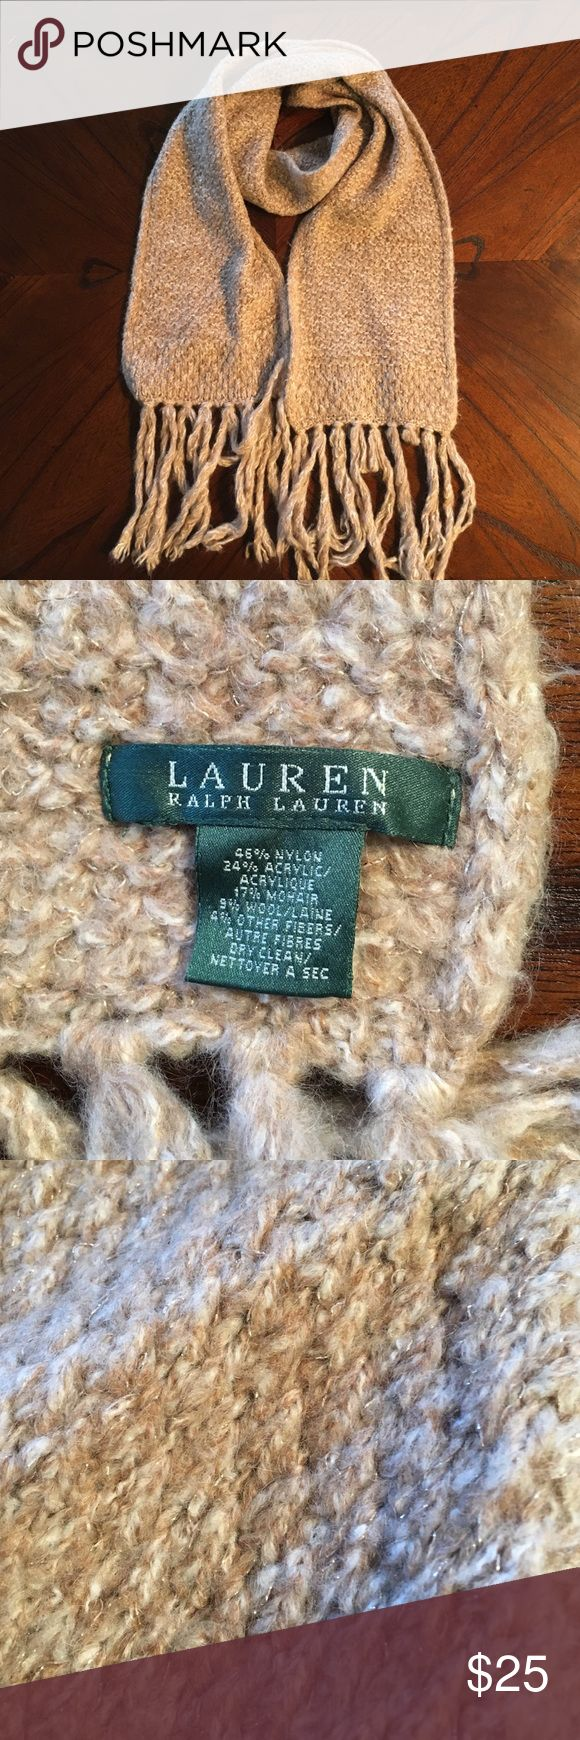 Tan Ralph Lauren Scarf Tan Ralph Lauren scarf with fringe ends and gold highlights throughout. Very soft and pretty! Brand new! Lauren Ralph Lauren Accessories Scarves & Wraps